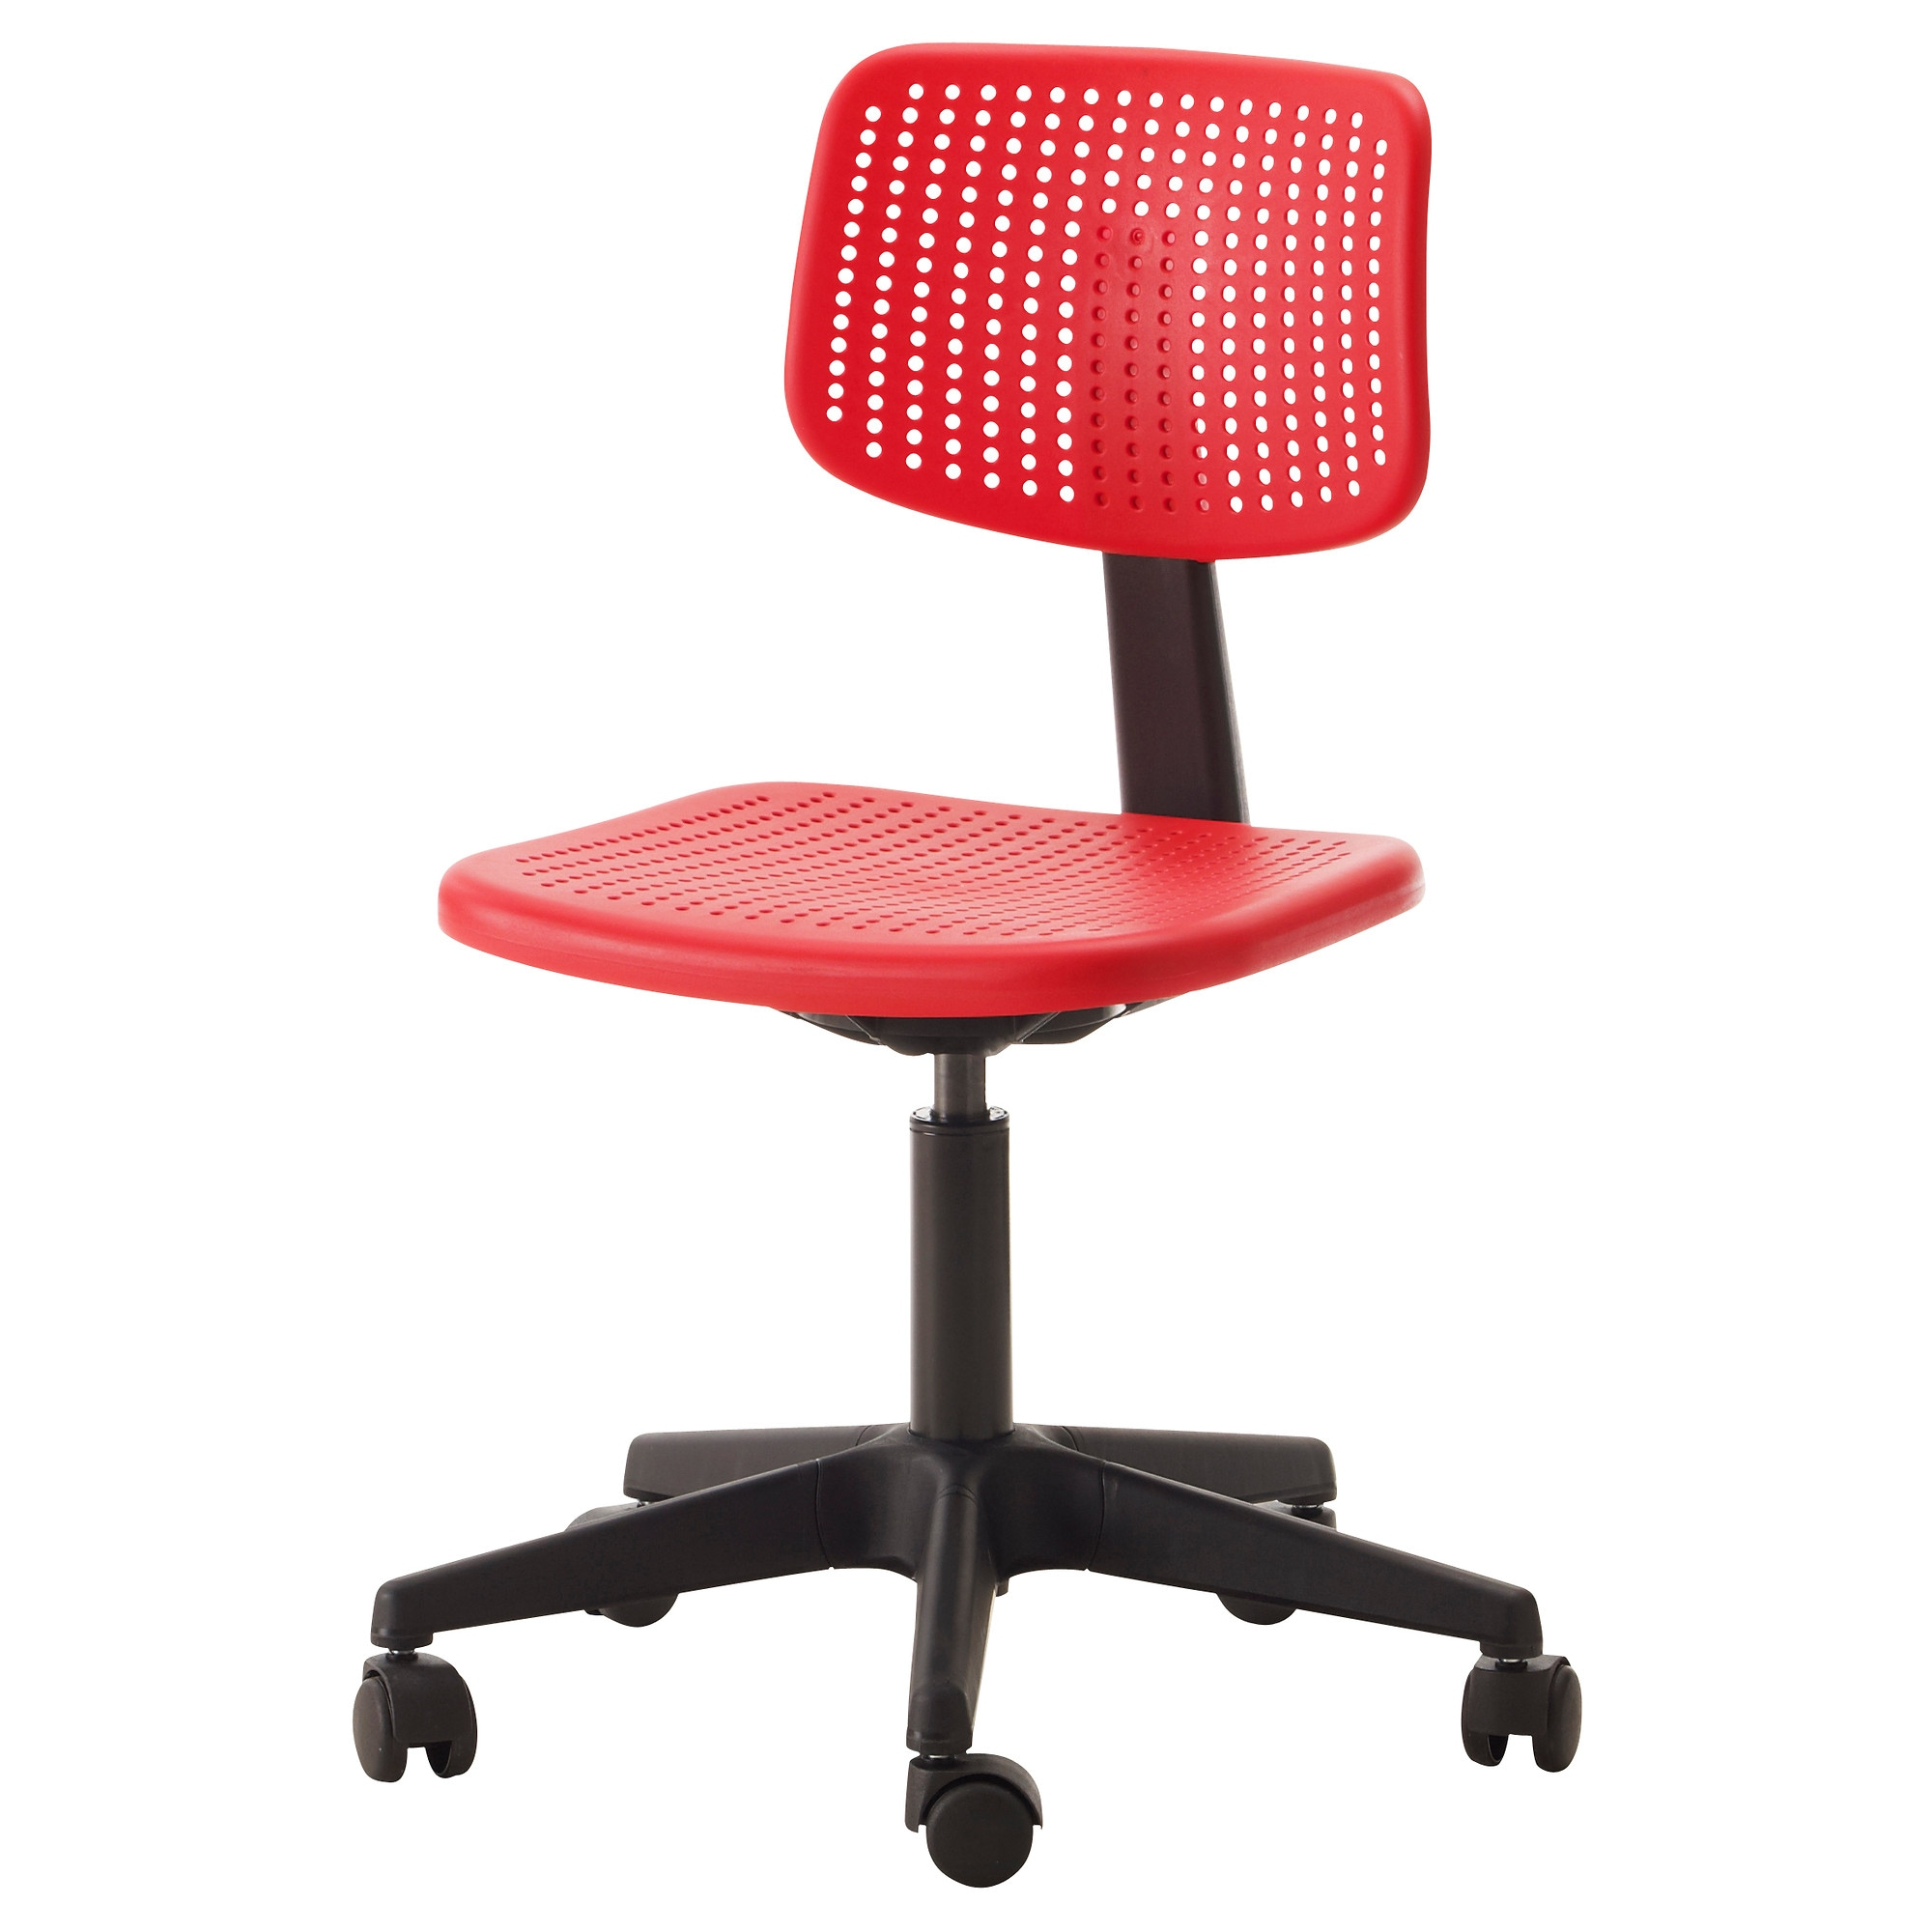 ikea rolling chair wheelchair options alrik swivel red inter systems b v 1999 2018 privacy policy responsible disclosure